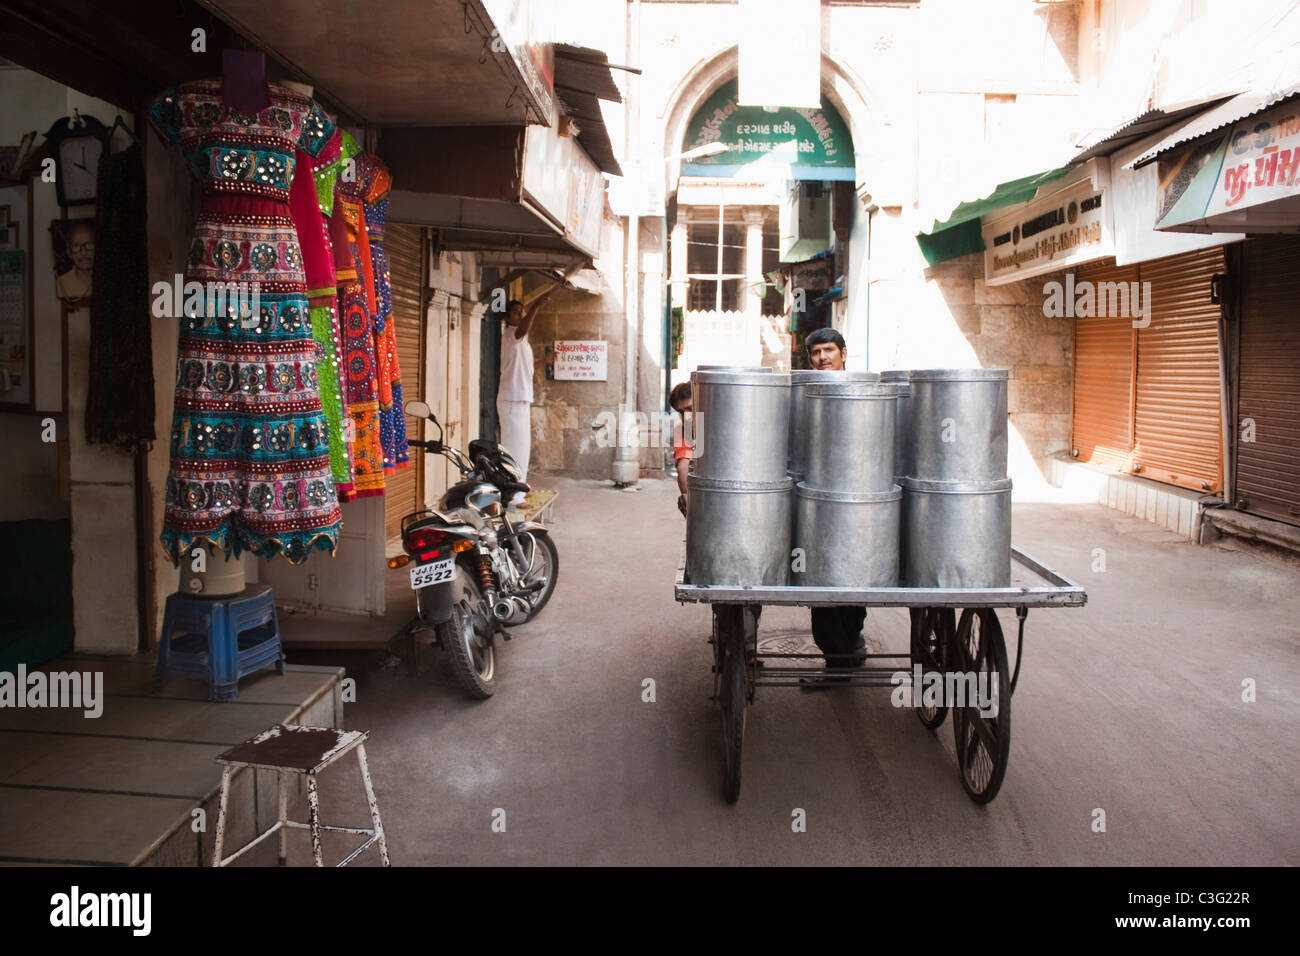 Two men pushing containers on a cart on the street, Ahmedabad, Gujarat, India Stock Photo